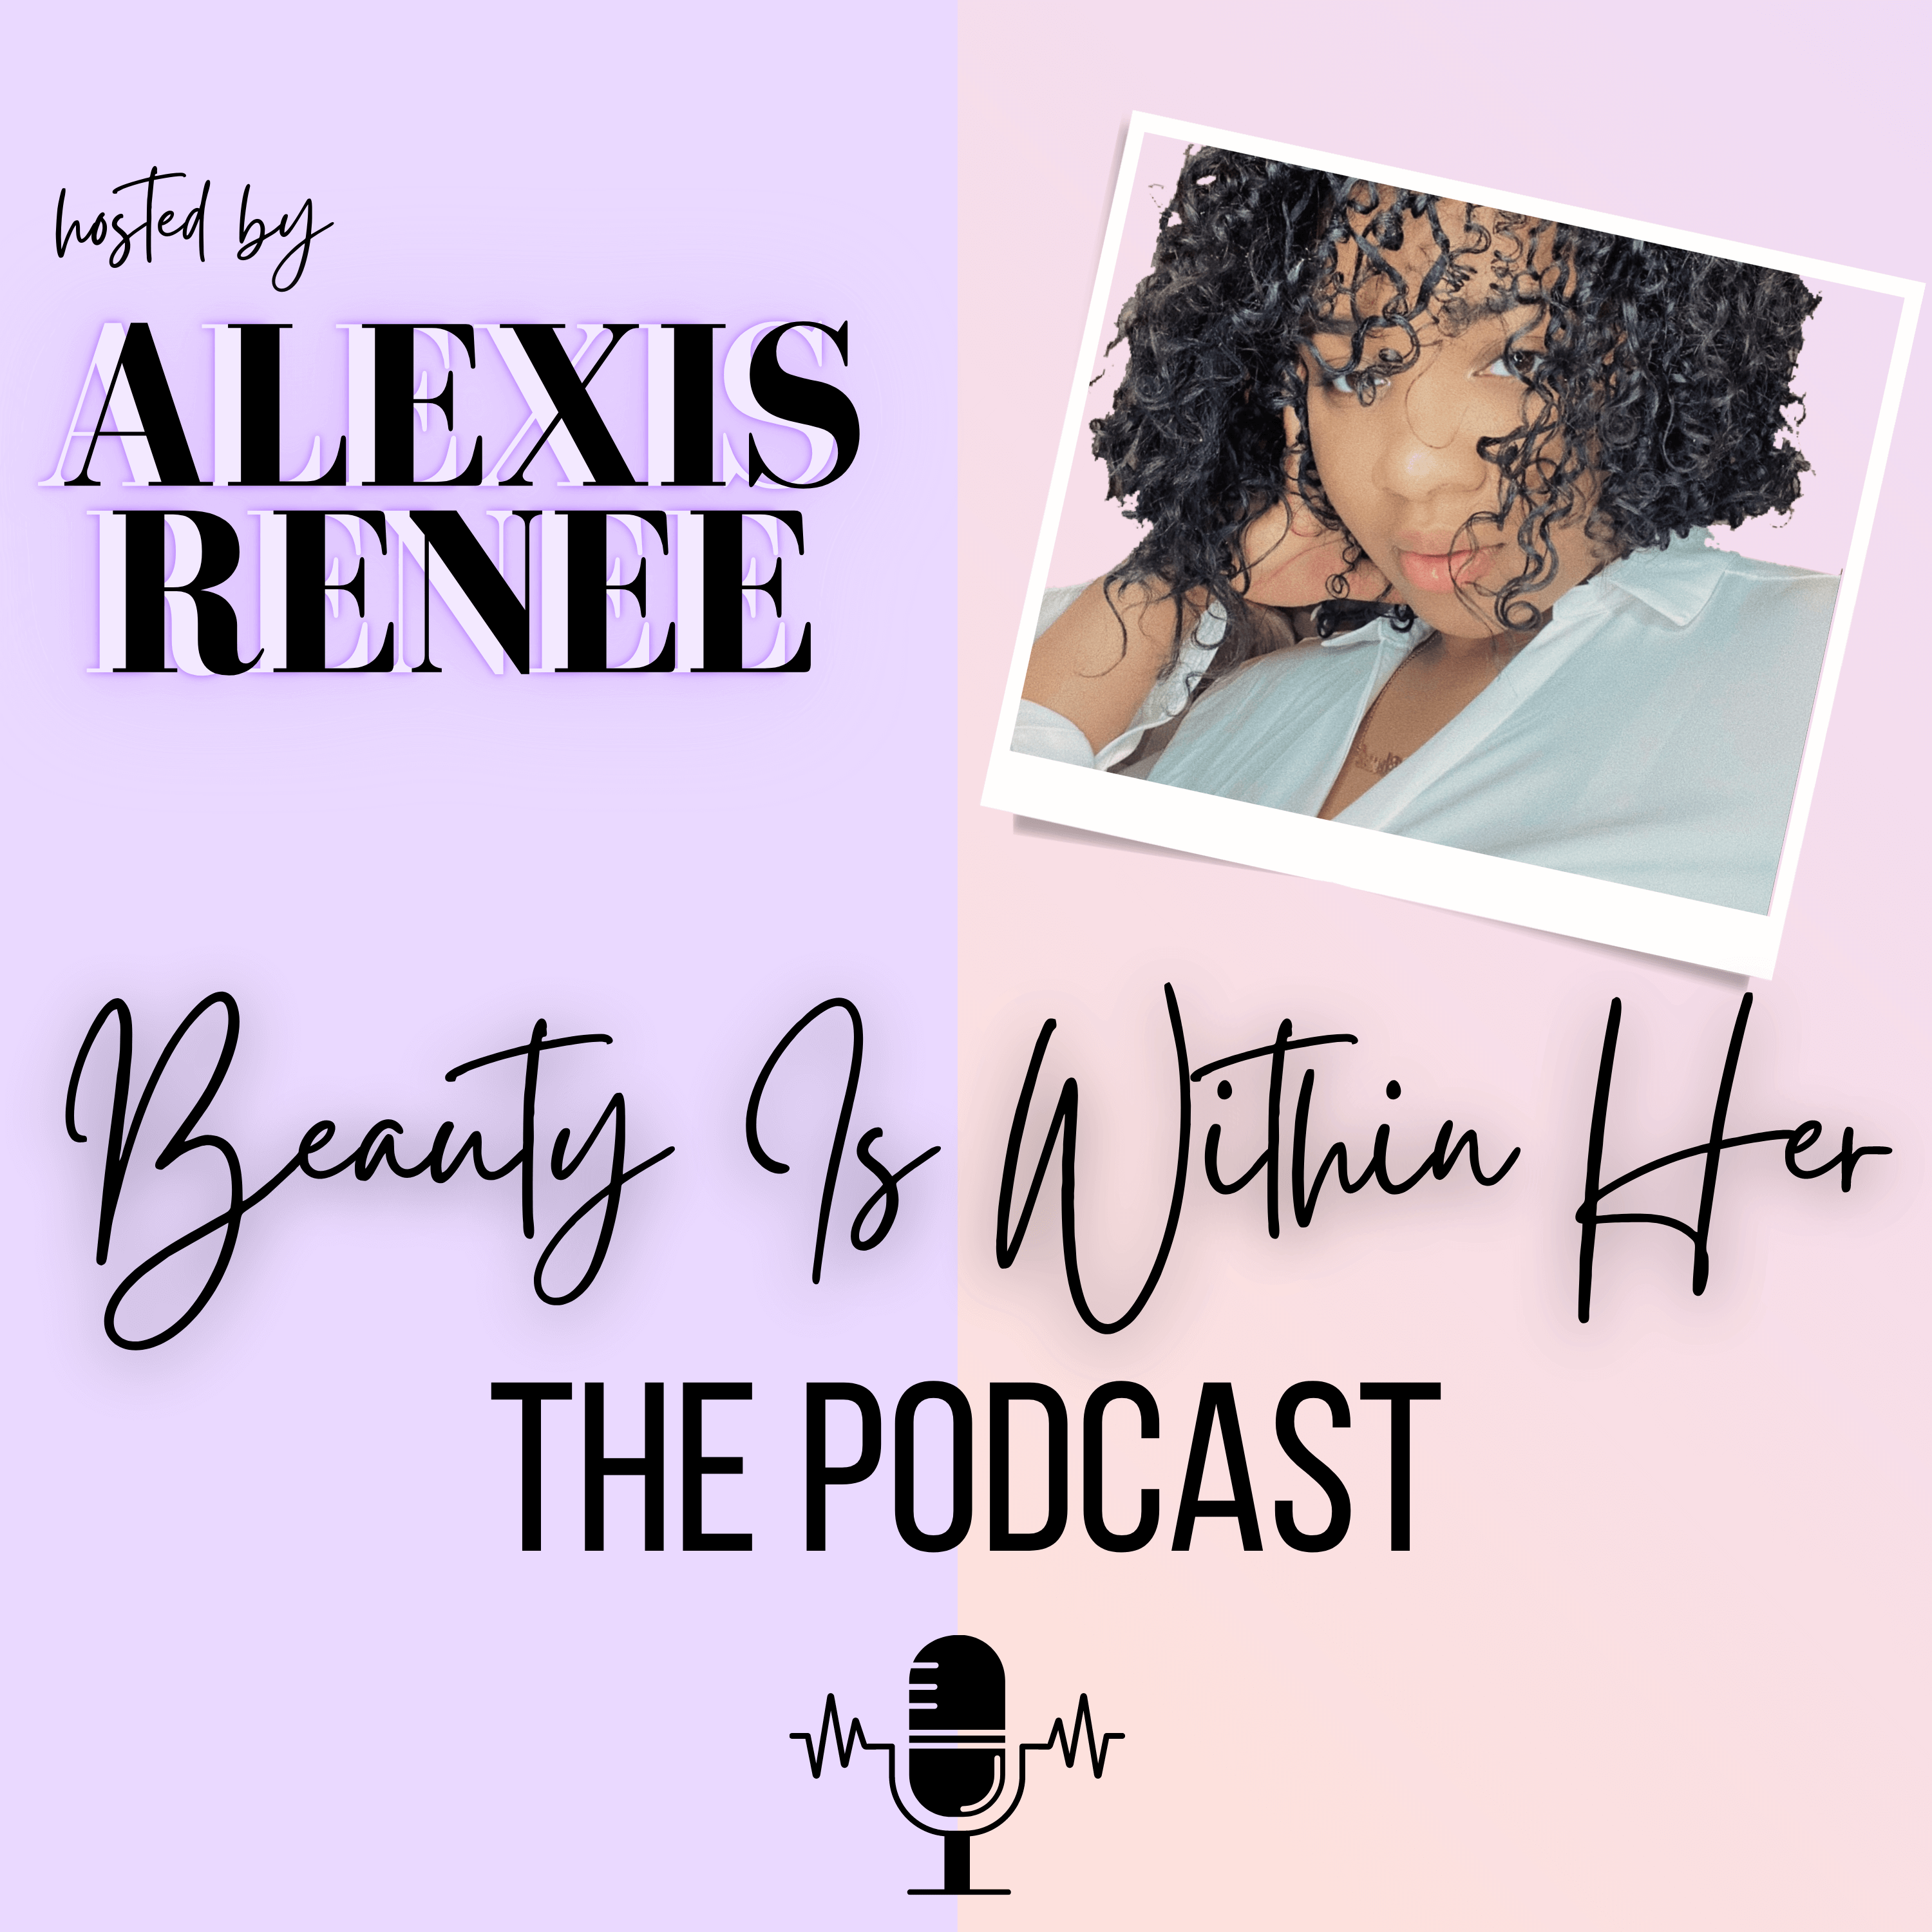 Artwork for podcast Beauty is Within Her